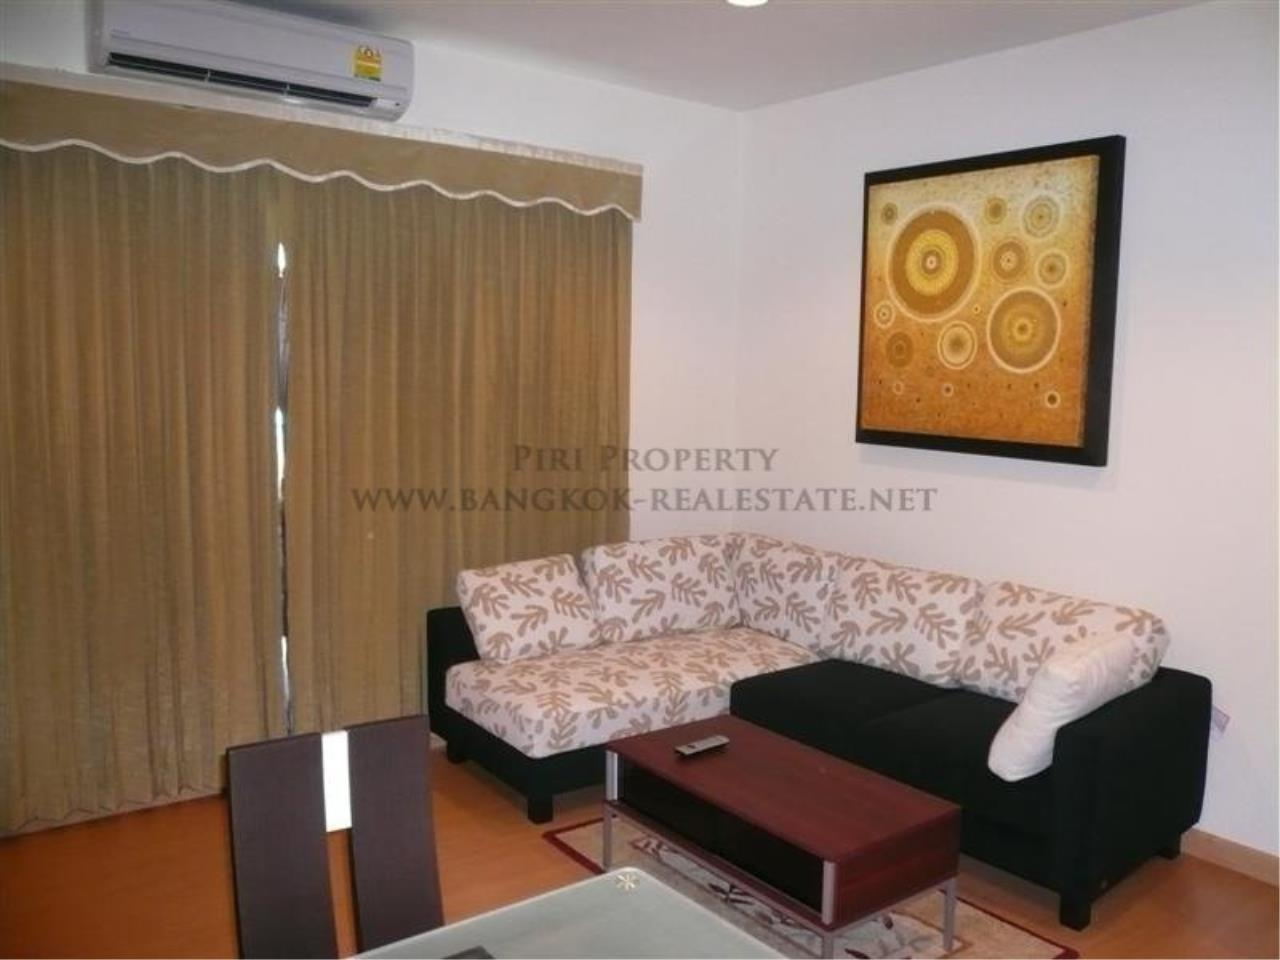 Piri Property Agency's Fully furnished 1 Bedroom next to Ratchatewi BTS - Baan Klang Krung Siam Pathumwan 5